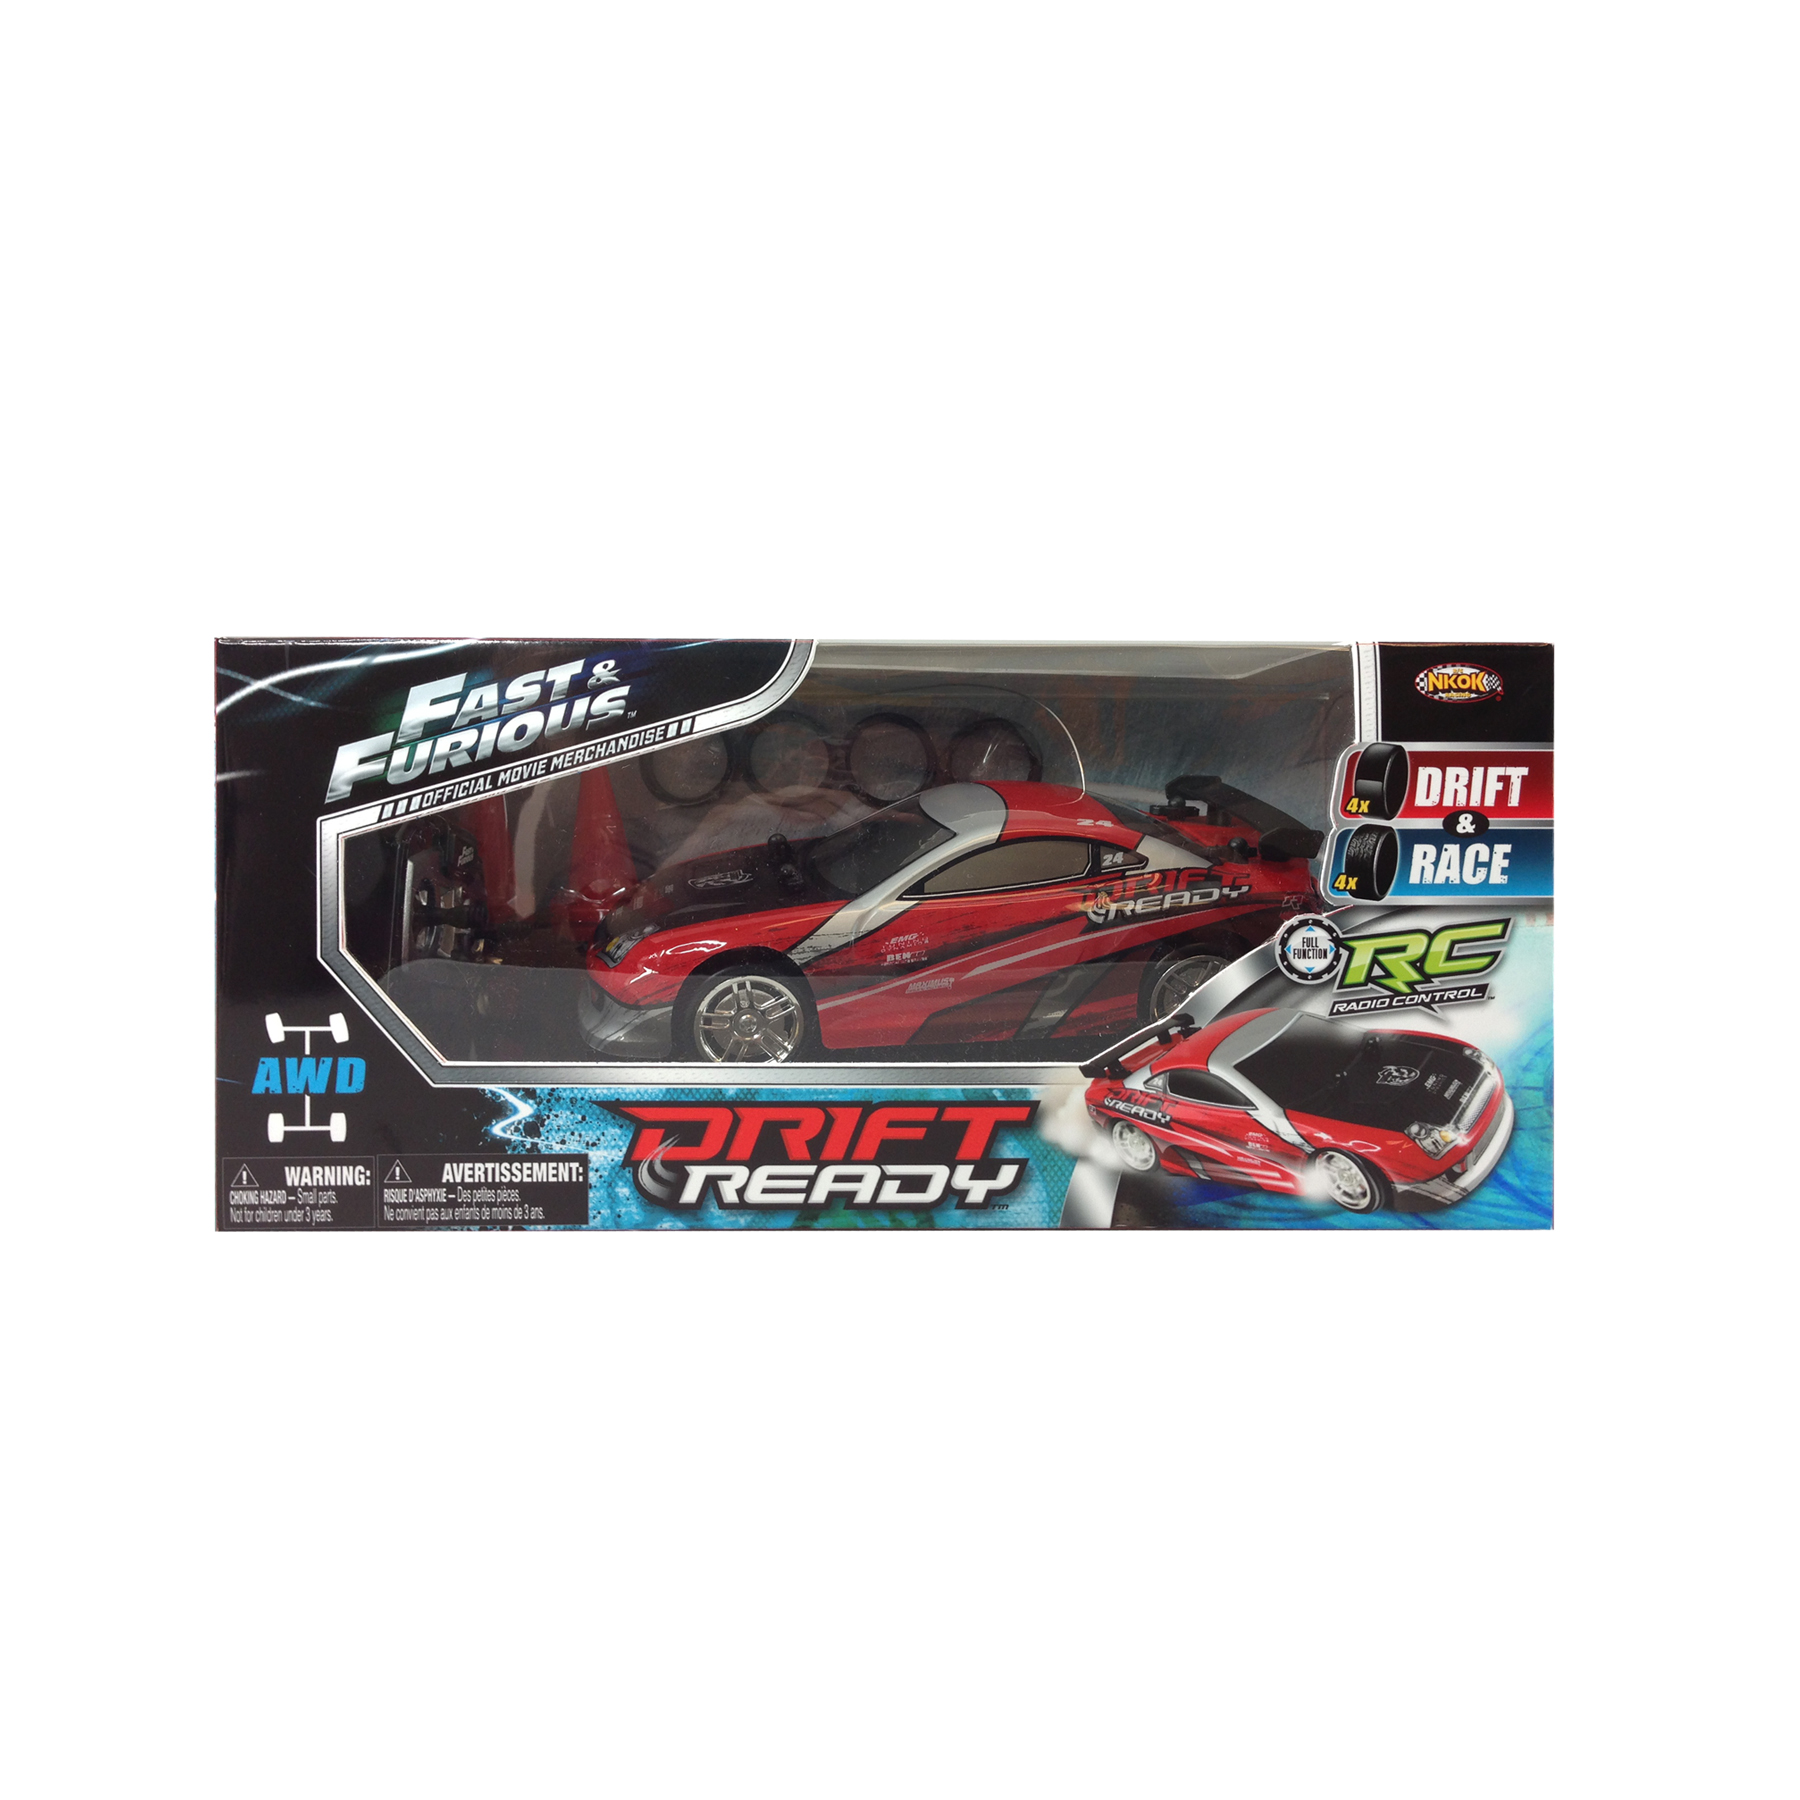 82271_FF6_124_DriftReady_Red_Box.jpg